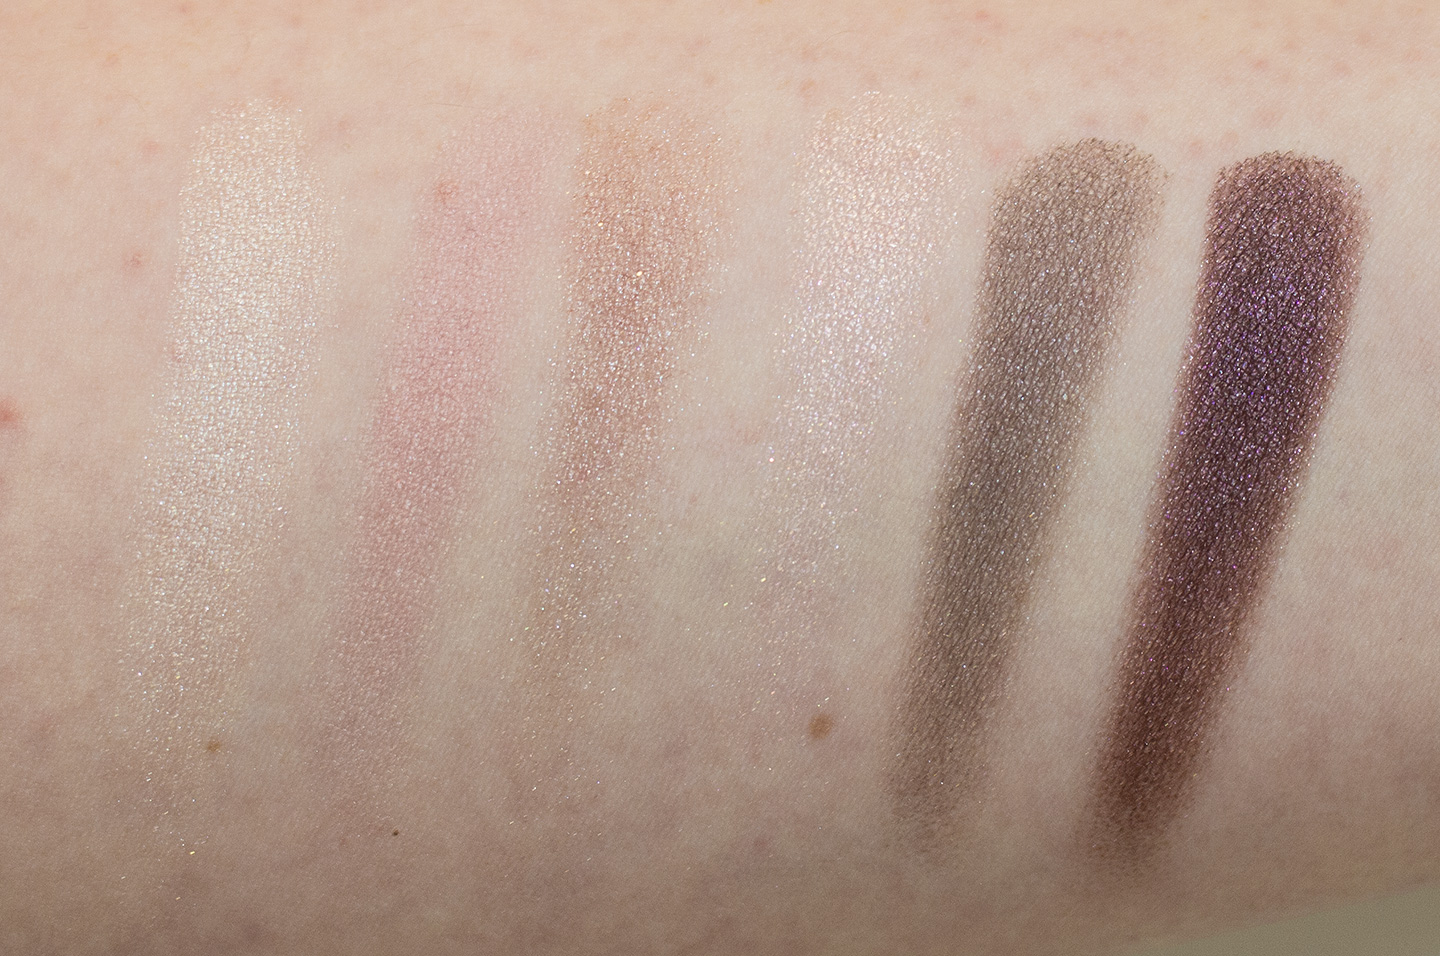 cat goddess nude imagesize:1440x956 w Flash swatches: All About Nude Shade #1, Shade #2, Shade #3, Shade #4, Shade #5, & Shade #6.